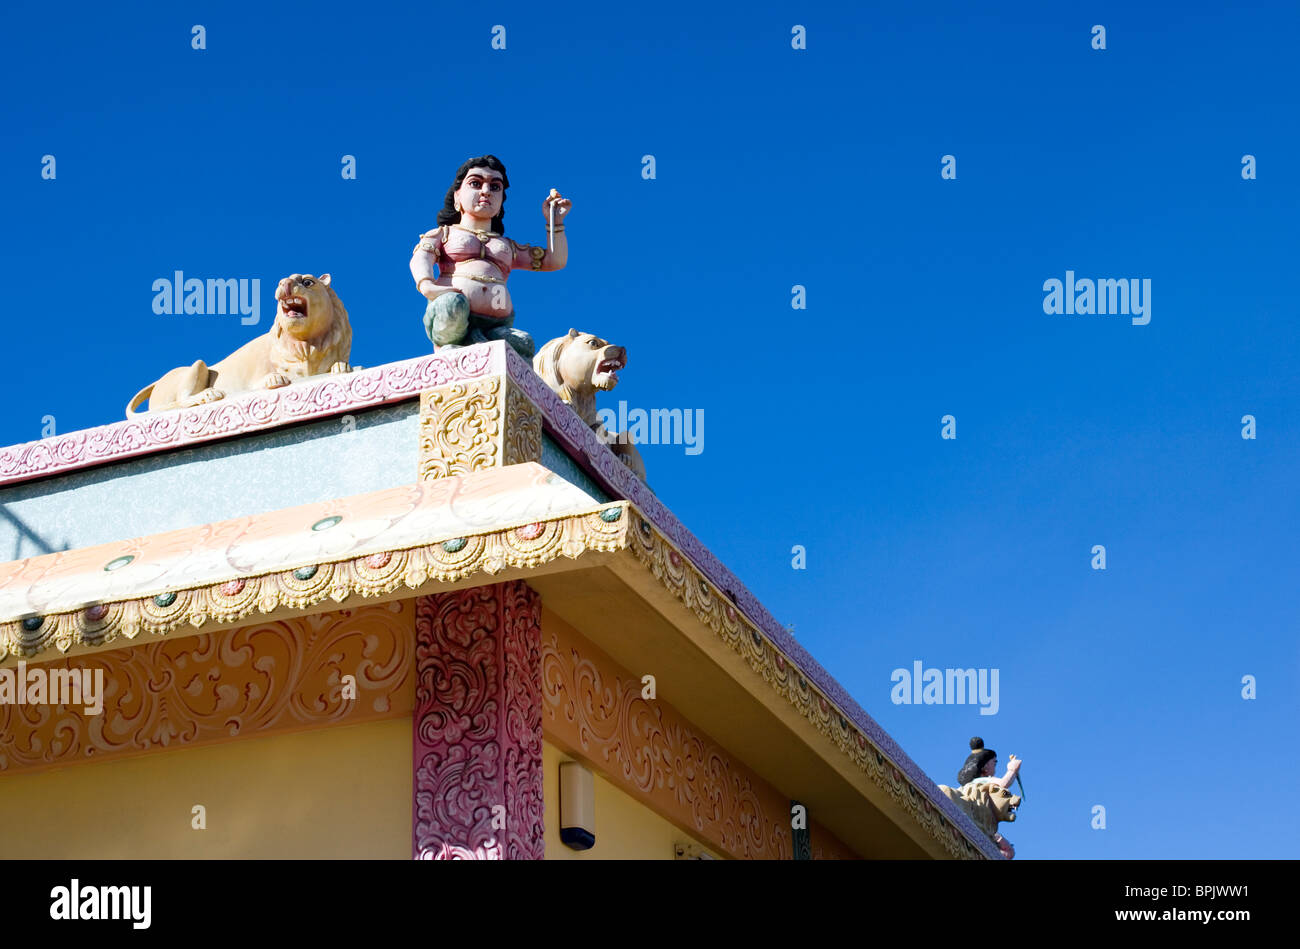 Temple Indian deity figure with lions, roof detail , Mauritius - Stock Image